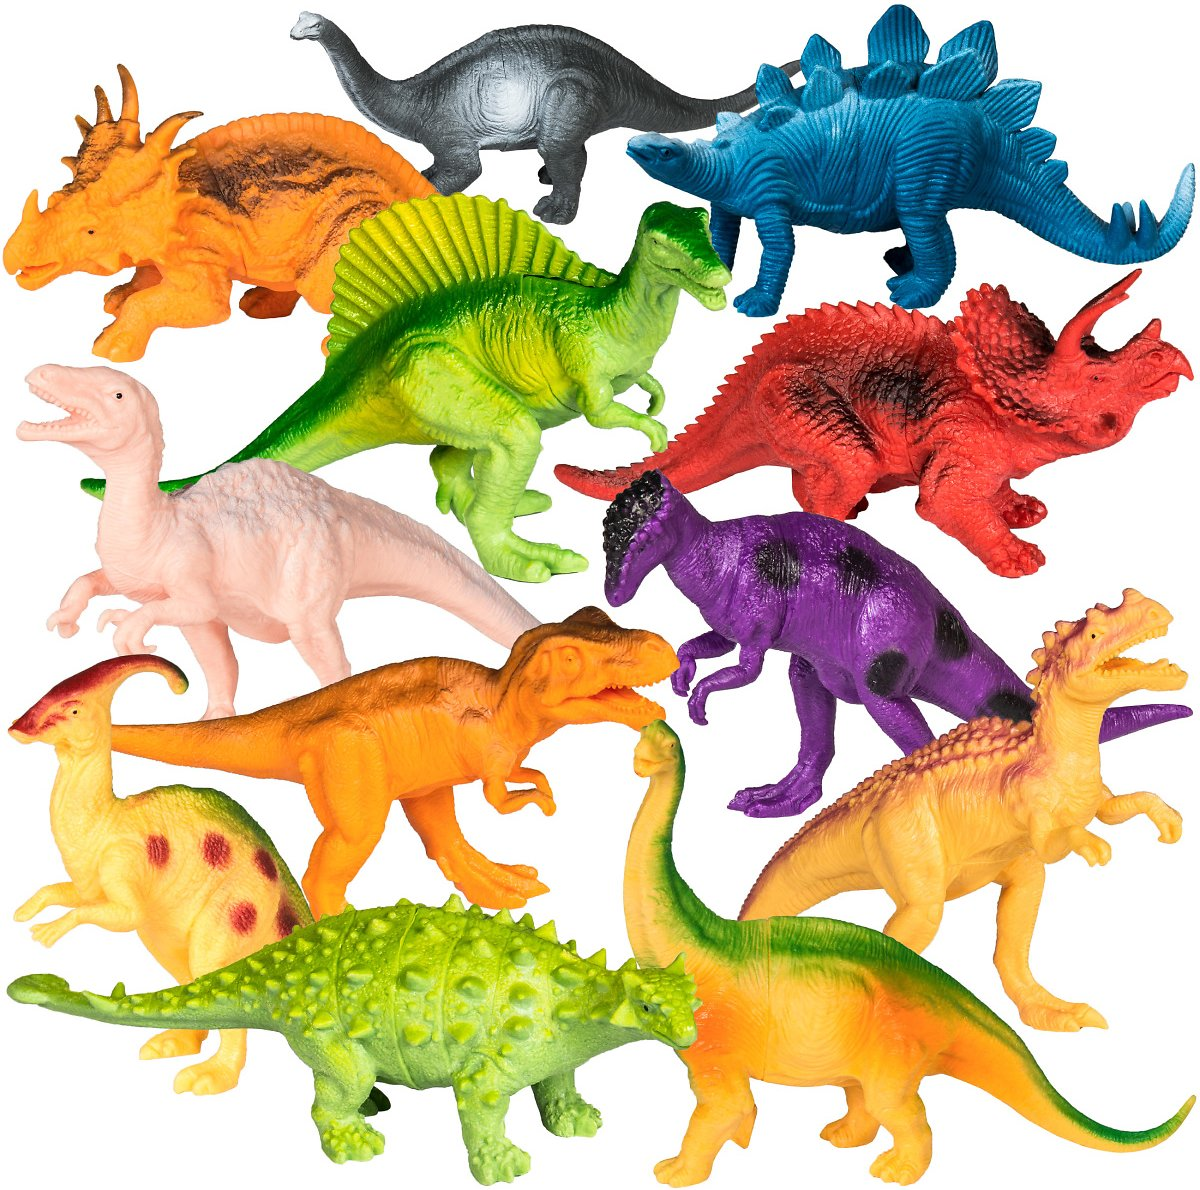 Best Choice Products 12-Pack of 7-Inch Mini Dinosaur Play Set of Educational and Realistic Models